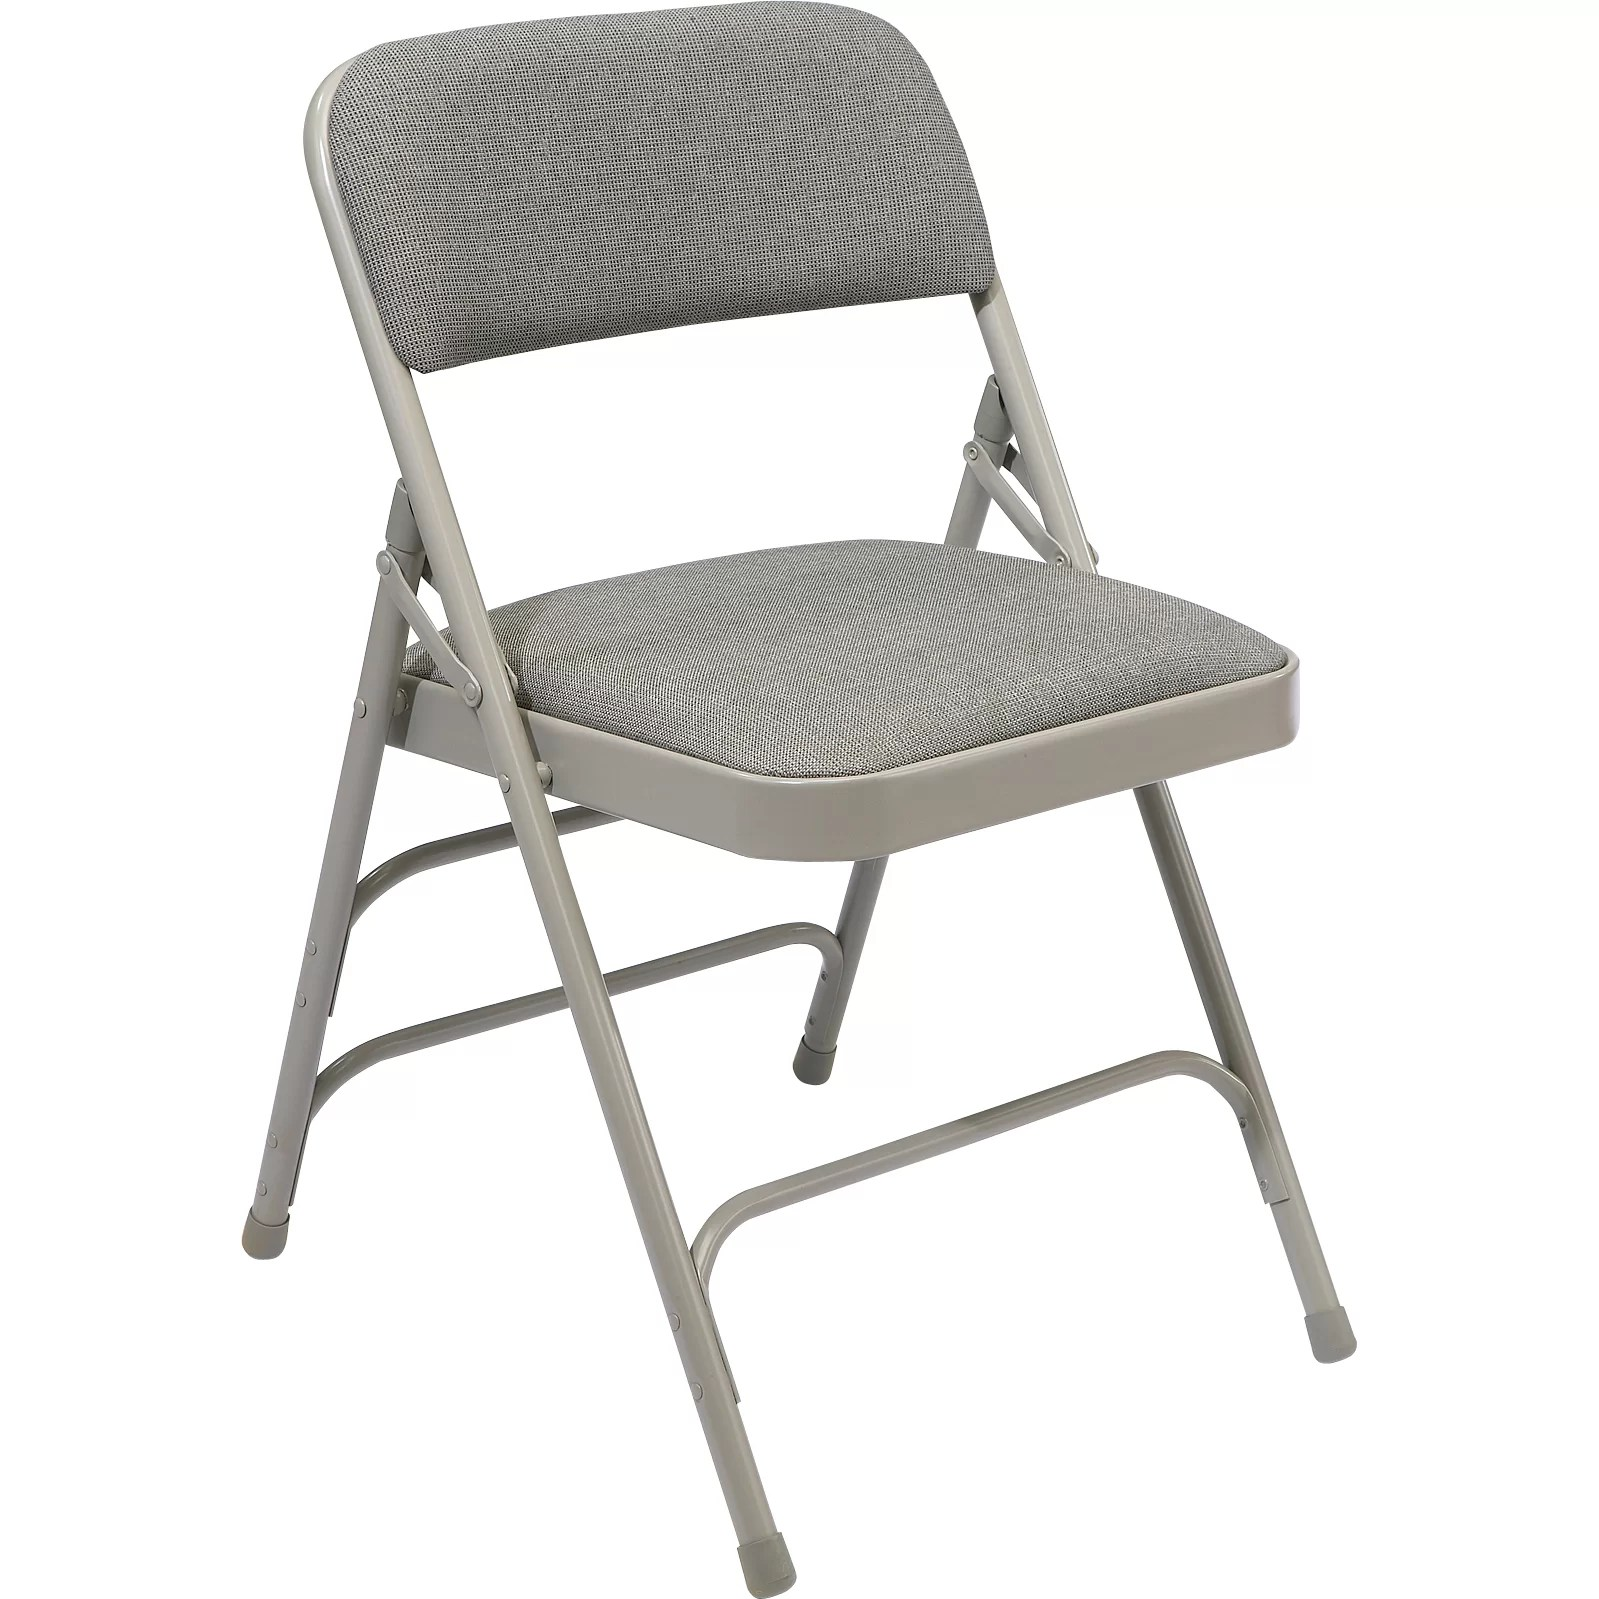 Upholstered Folding Chairs National Public Seating 2300 Series Triple Strength